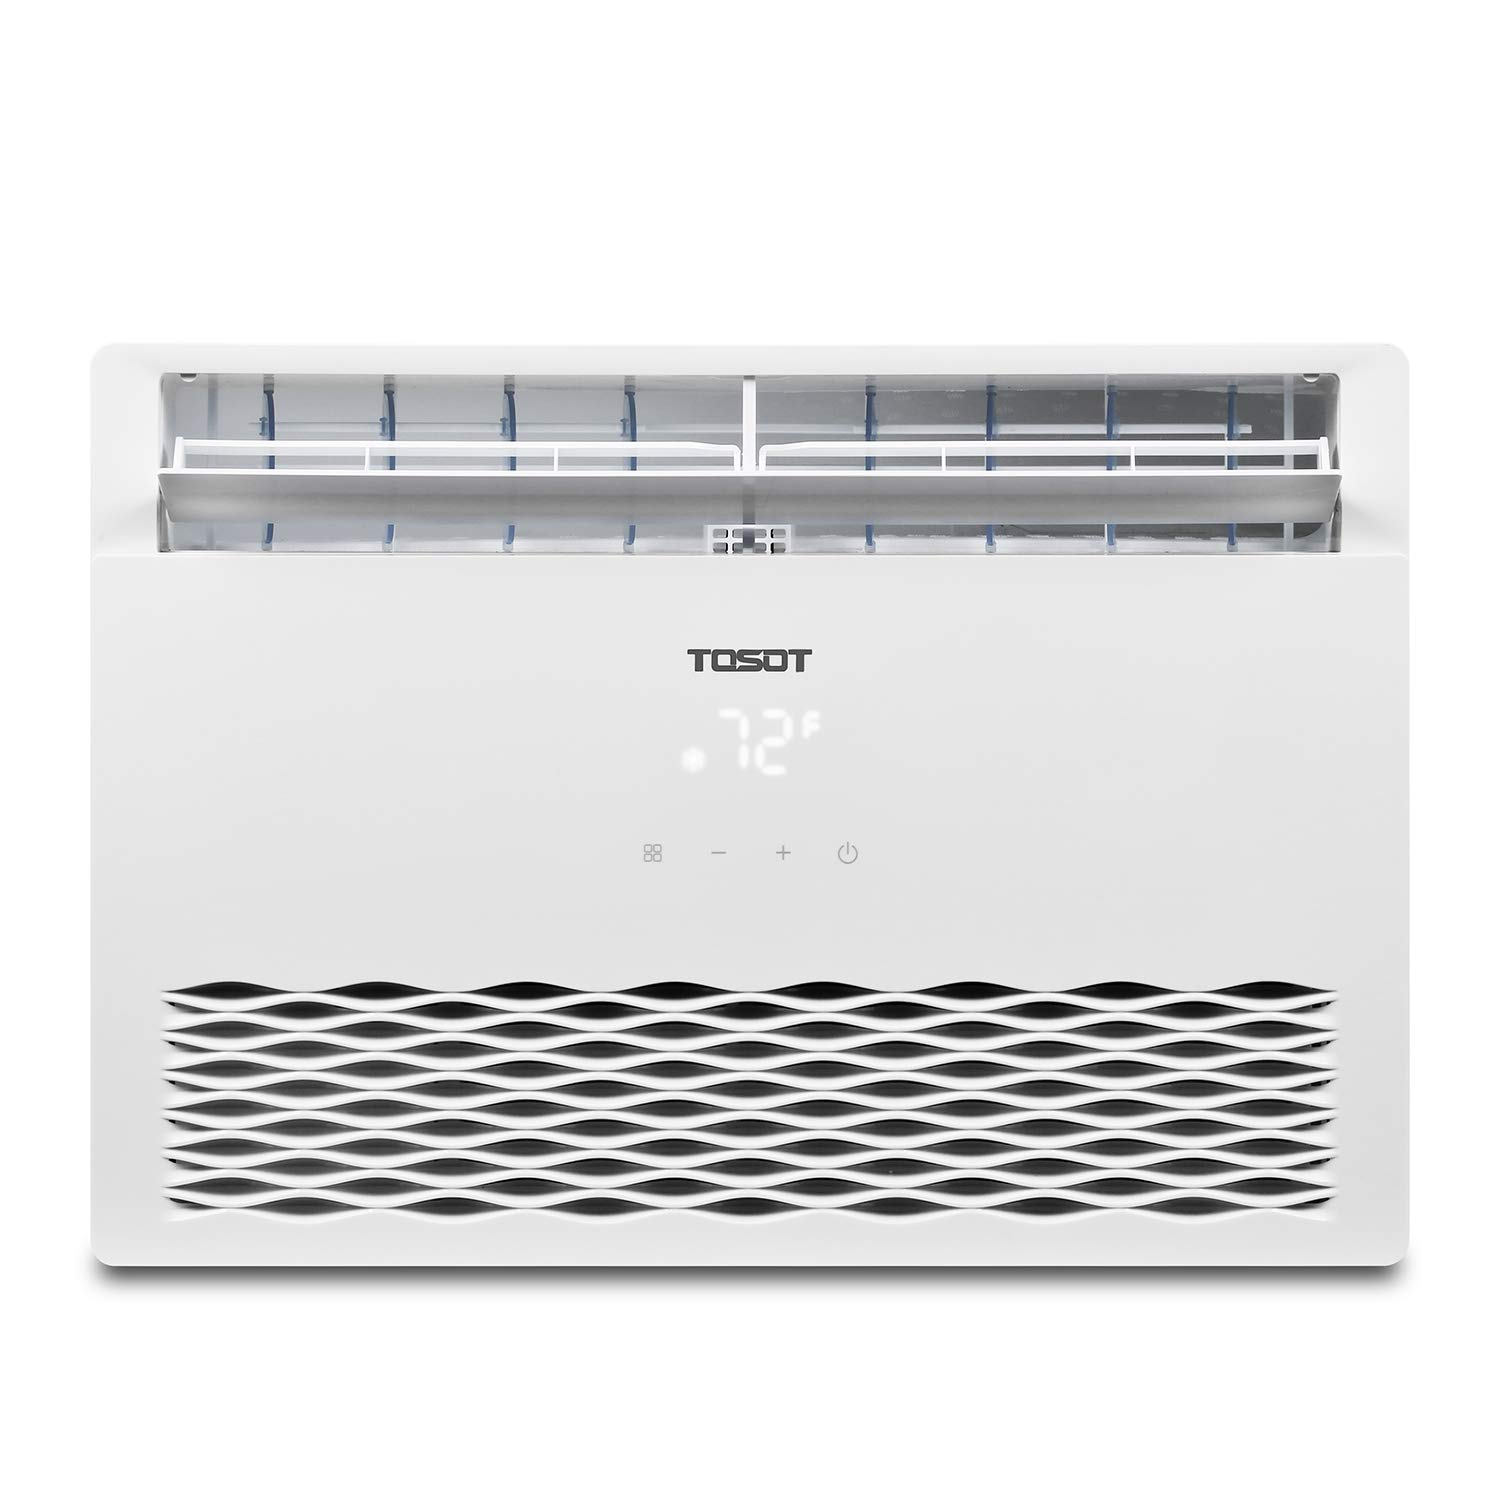 TOSOT 8,000 BTU Window Air Conditioner - 2019 Model, Energy Star, Modern Design, and Temperature-Sensing Remote - Window AC for Bedroom, Living Room, and attics up to 350 sq. ft. by TOSOT